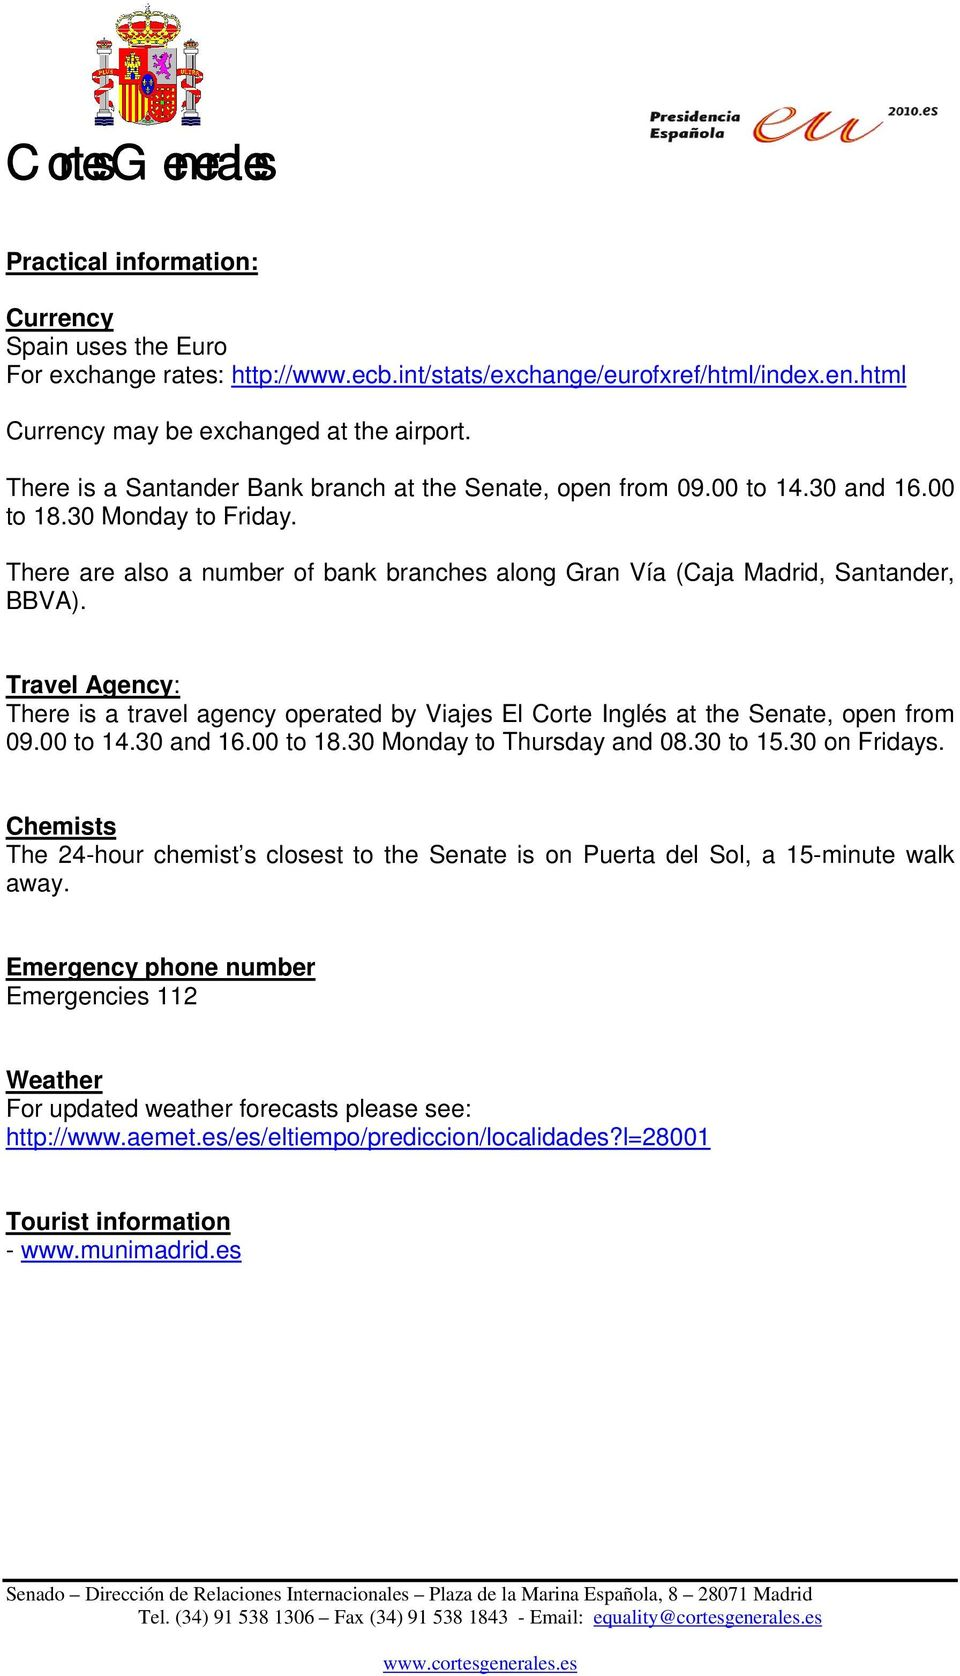 Travel Agency: There is a travel agency operated by Viajes El Corte Inglés at the Senate, open from 09.00 to 14.30 and 16.00 to 18.30 Monday to Thursday and 08.30 to 15.30 on Fridays.